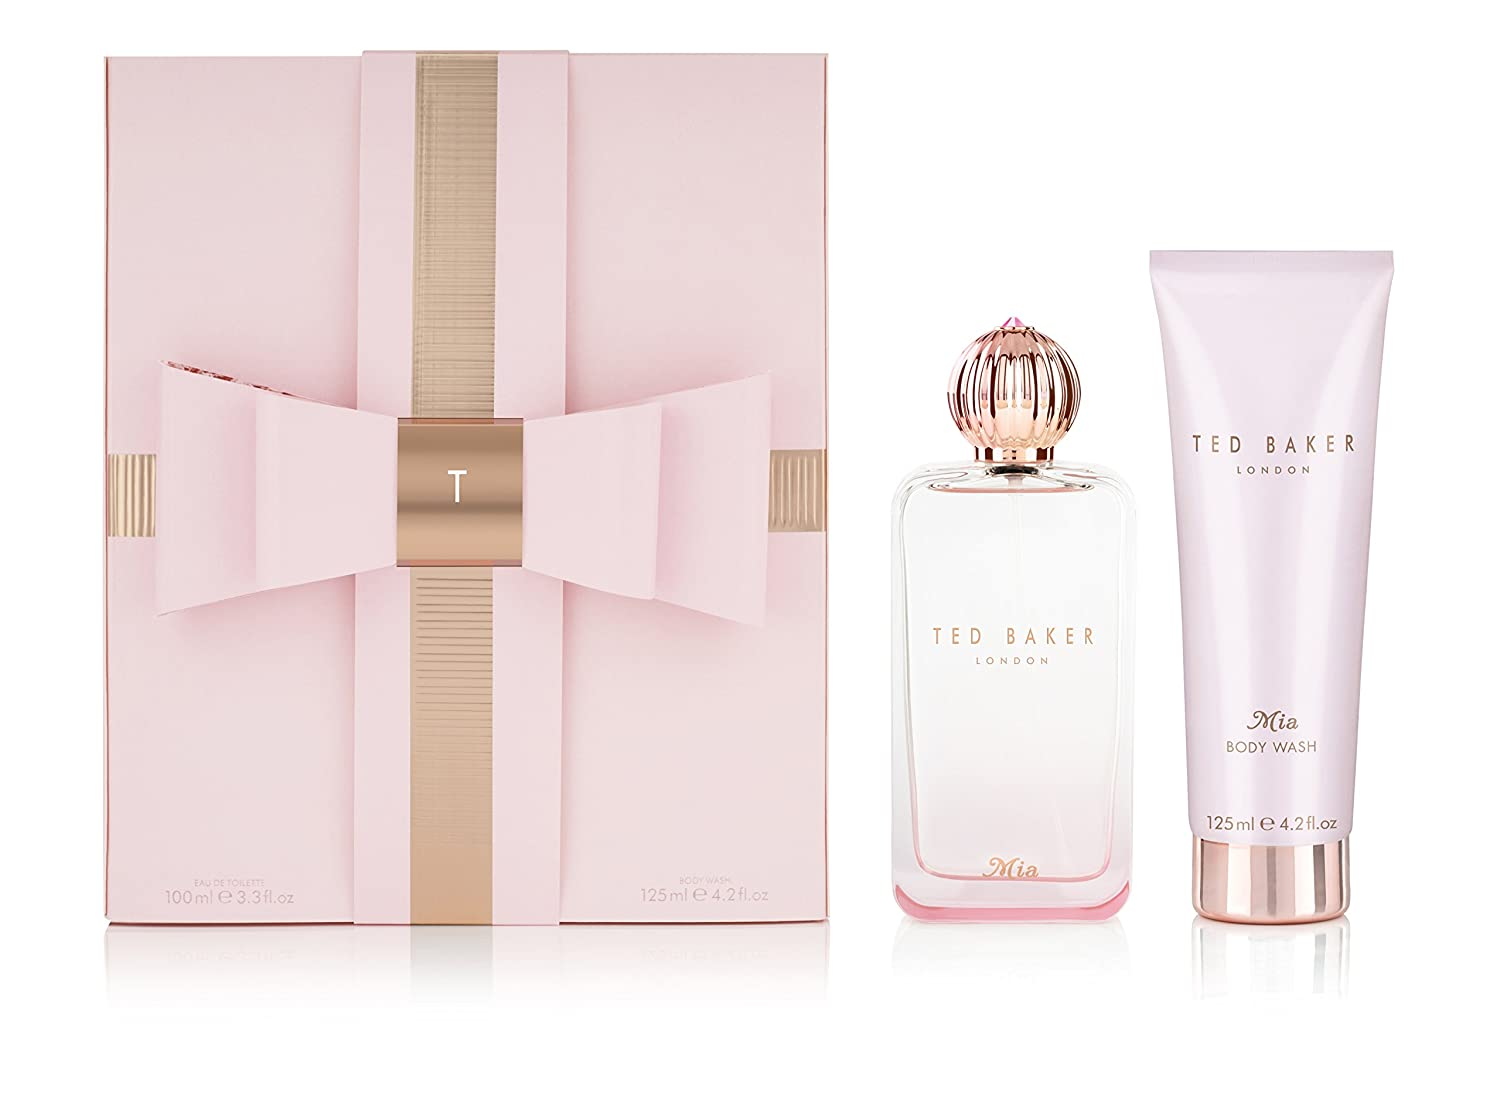 16c237f7c6b559 Ted Baker Sweet Treat Gift Set - Mia - 100 ml EDT + 125 ml Body Wash   Amazon.co.uk  Luxury Beauty